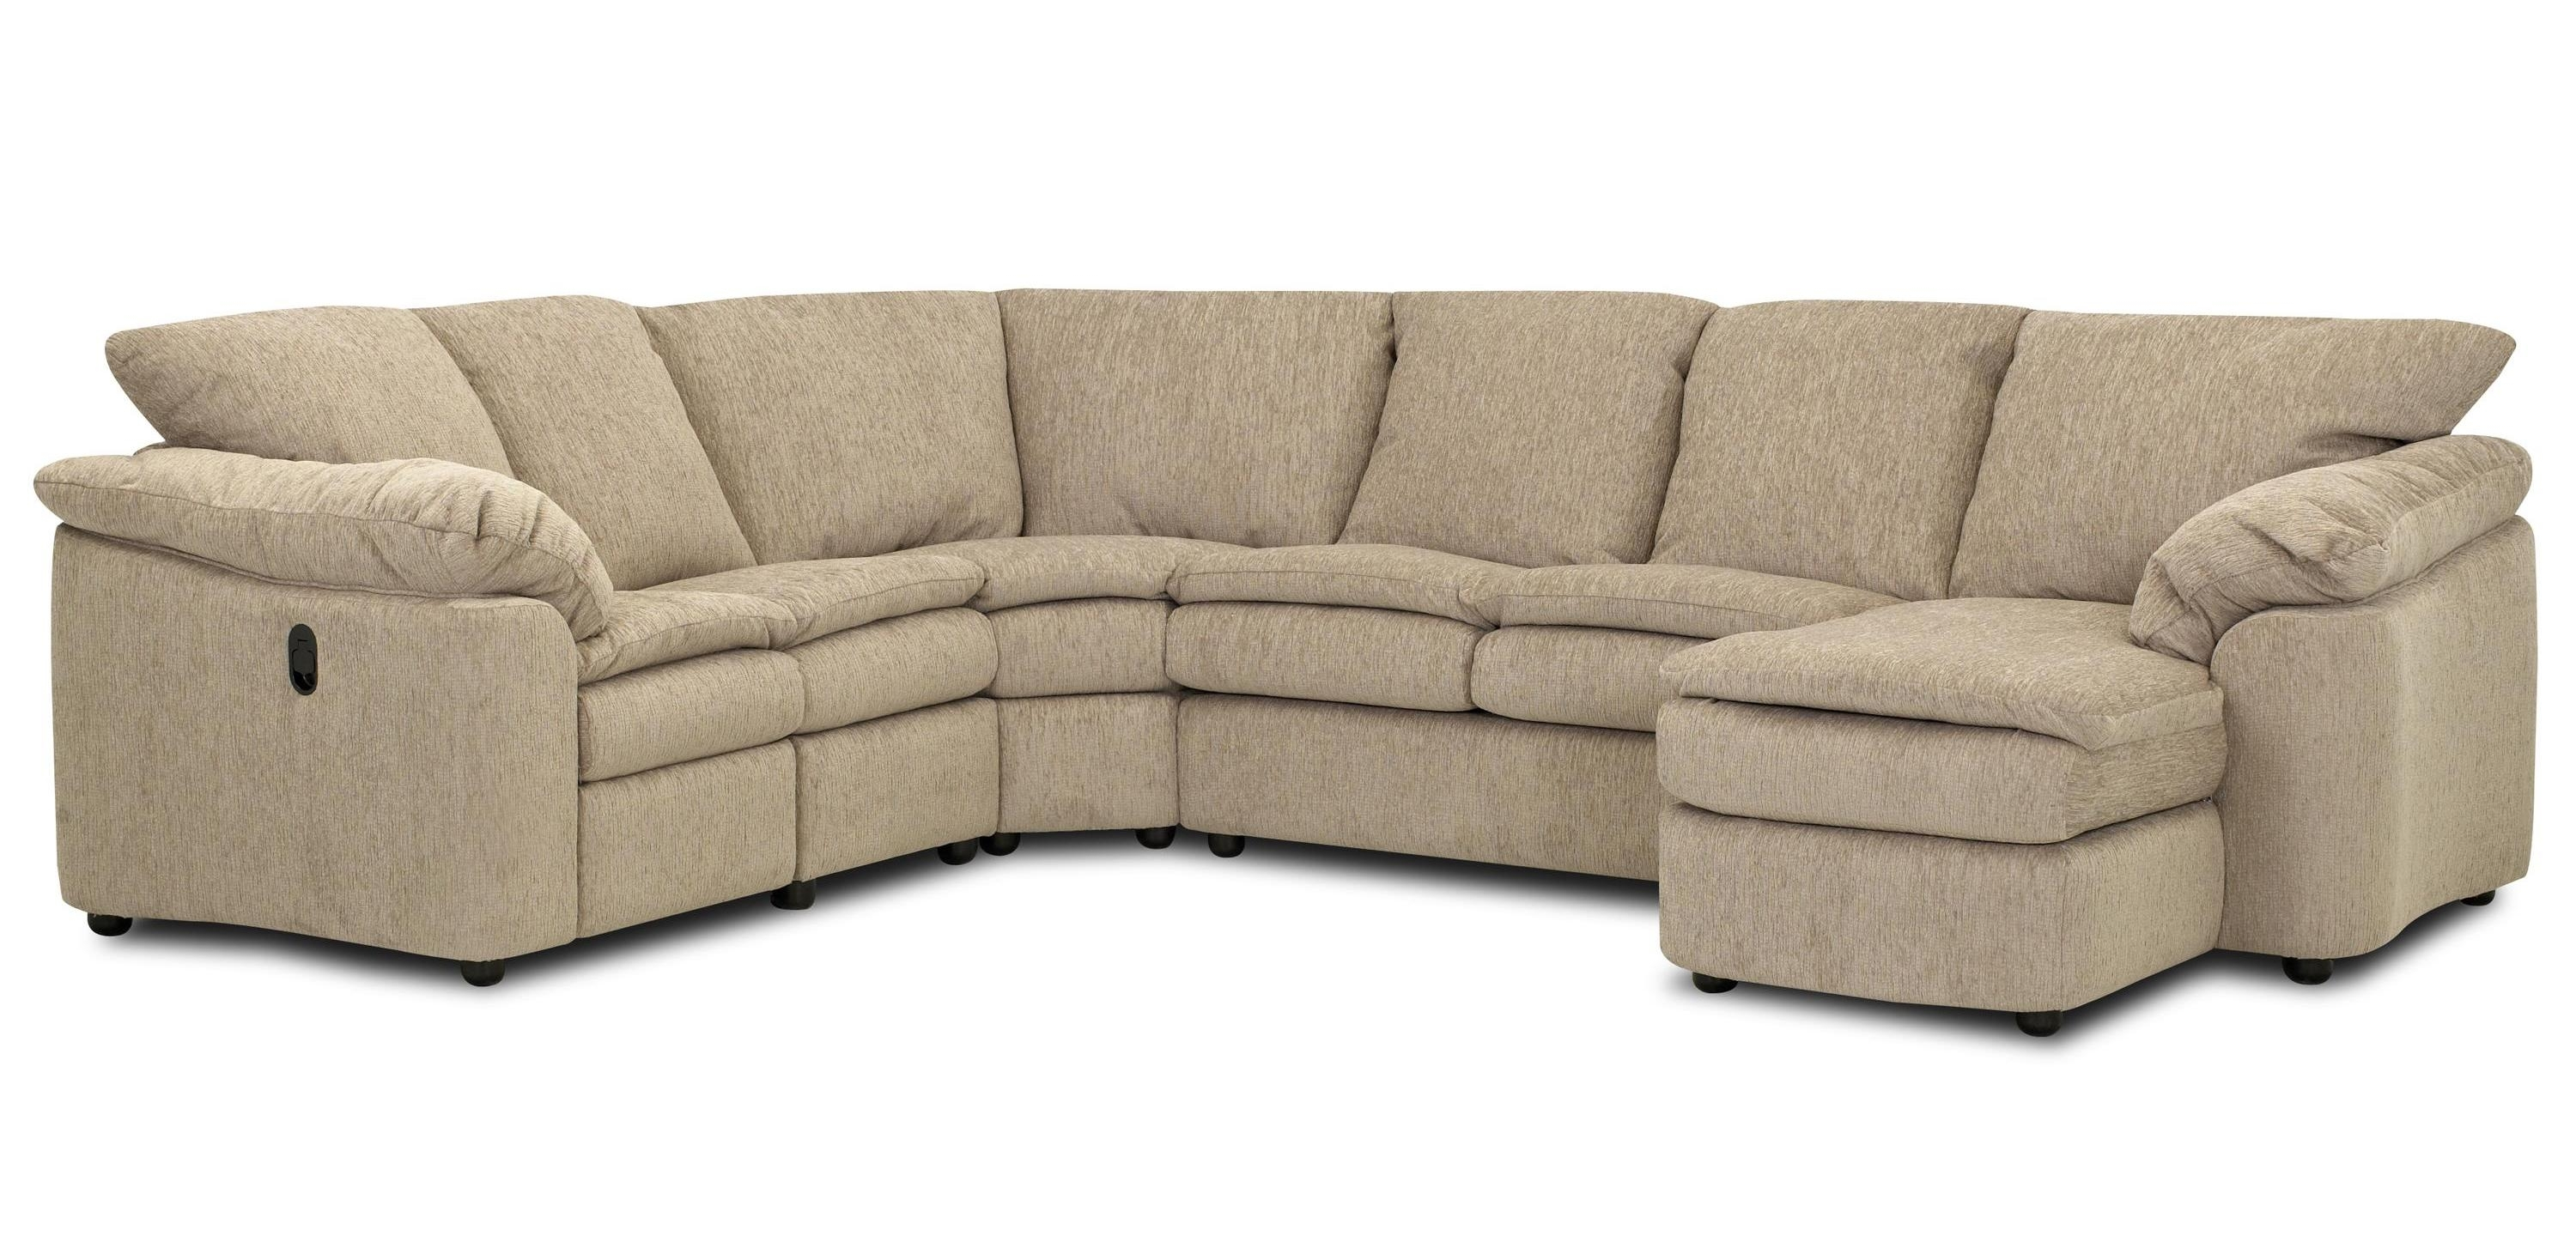 Klaussner Legacy Dual Reclining Left Arm Loveseat, Sleeper And Right for Norfolk Chocolate 6 Piece Sectionals With Laf Chaise (Image 14 of 30)